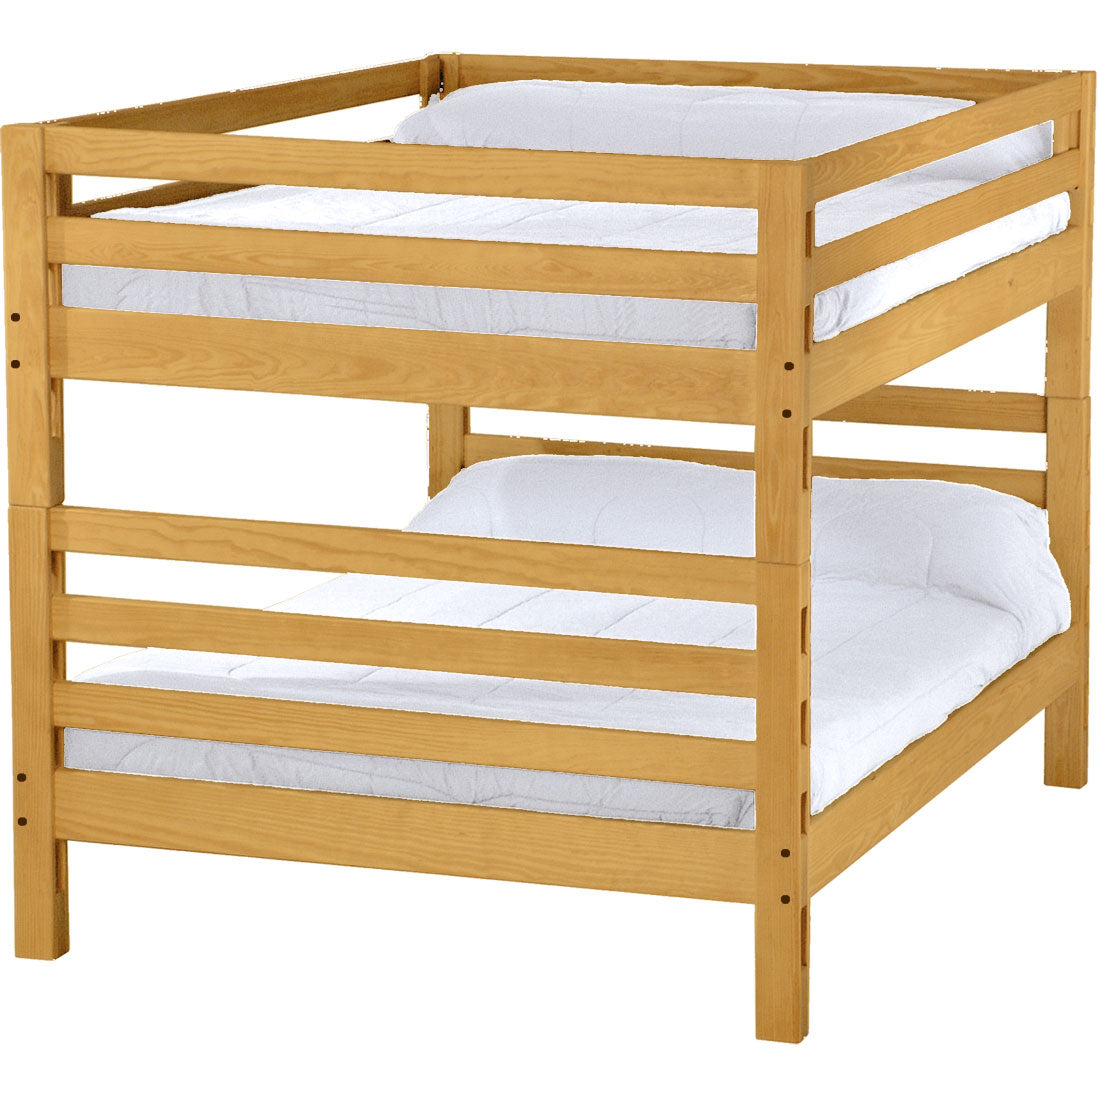 Picture of: Ladder End Bunk Bed Queen Over Queen Crate Designs Furniture